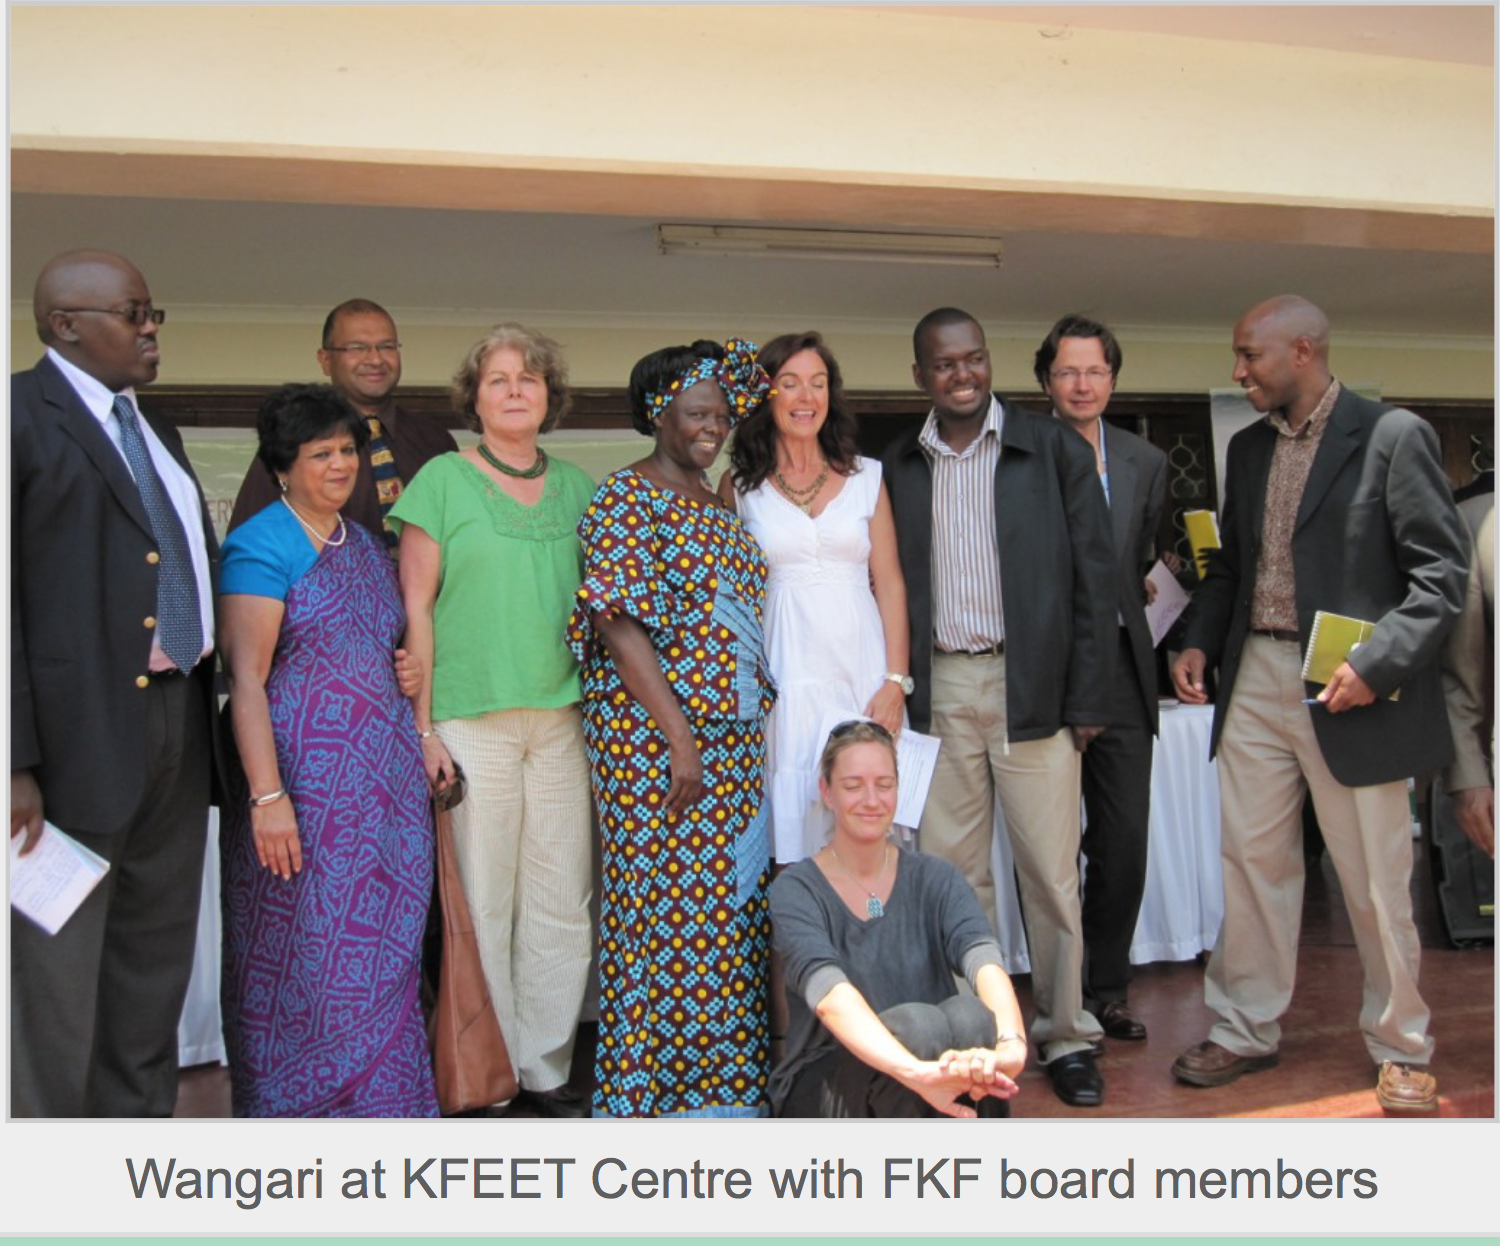 Wangari at KFEET Centre with FKF board members